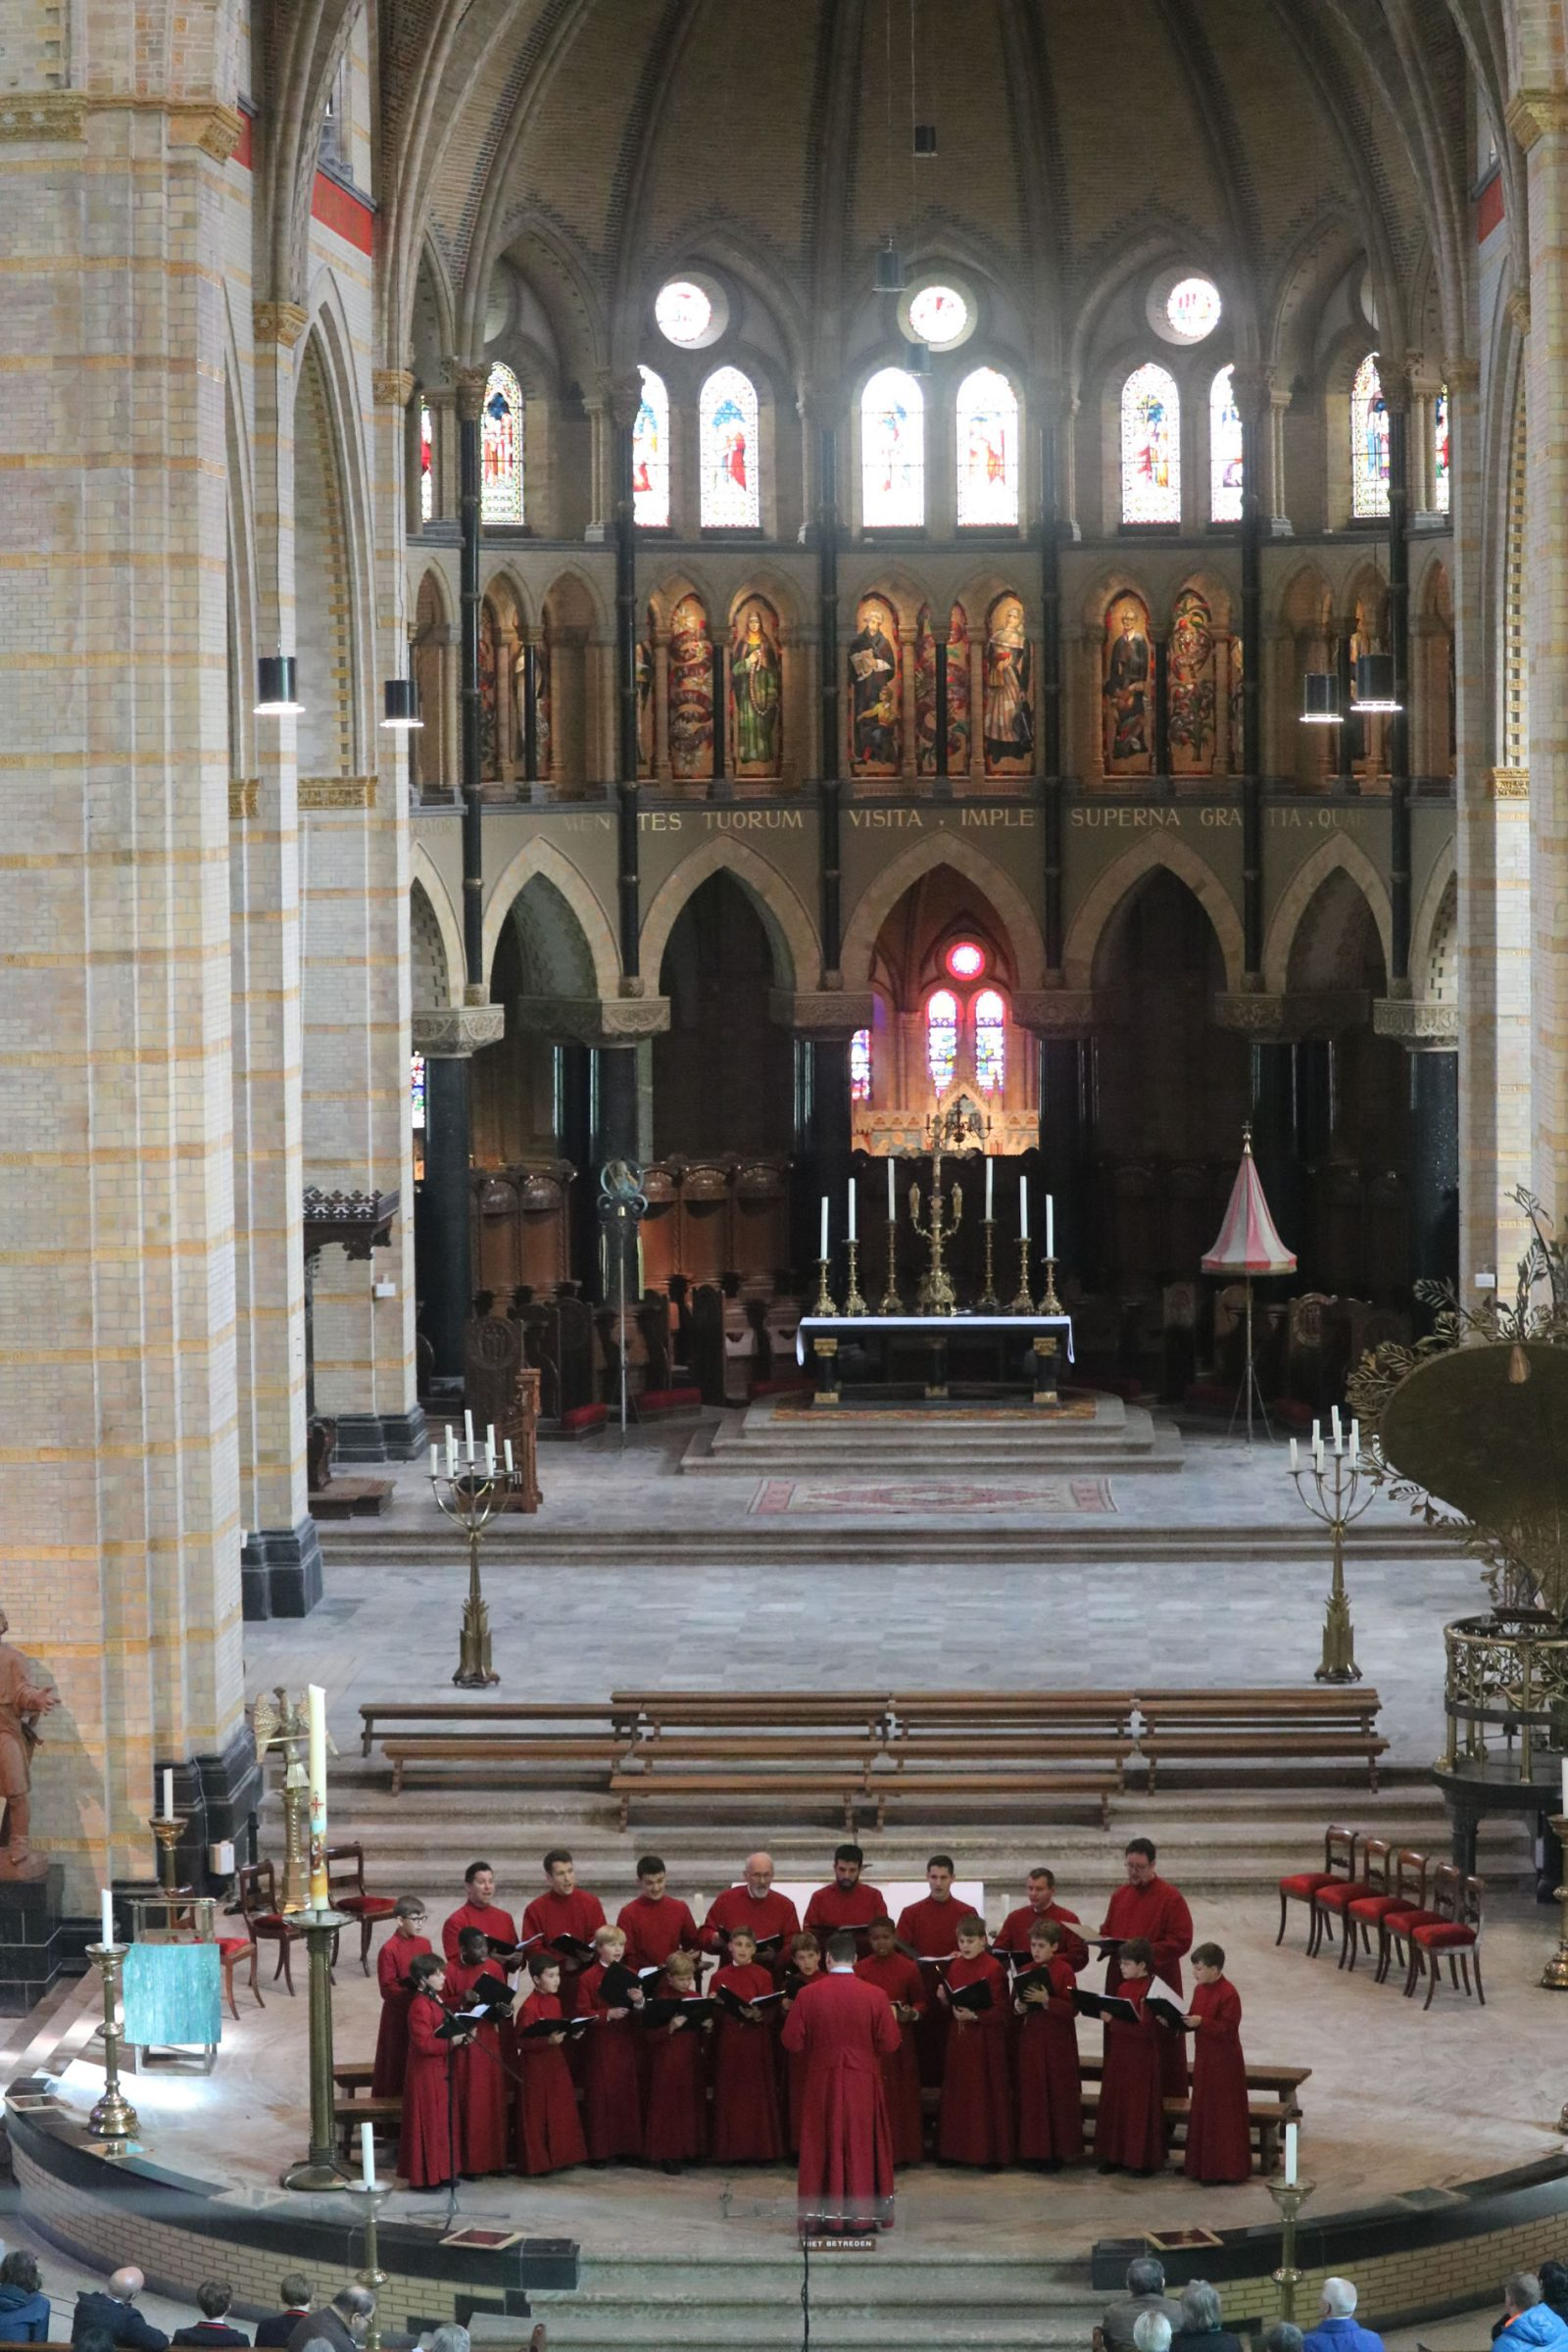 The Choir in St Bavo's Cathedral